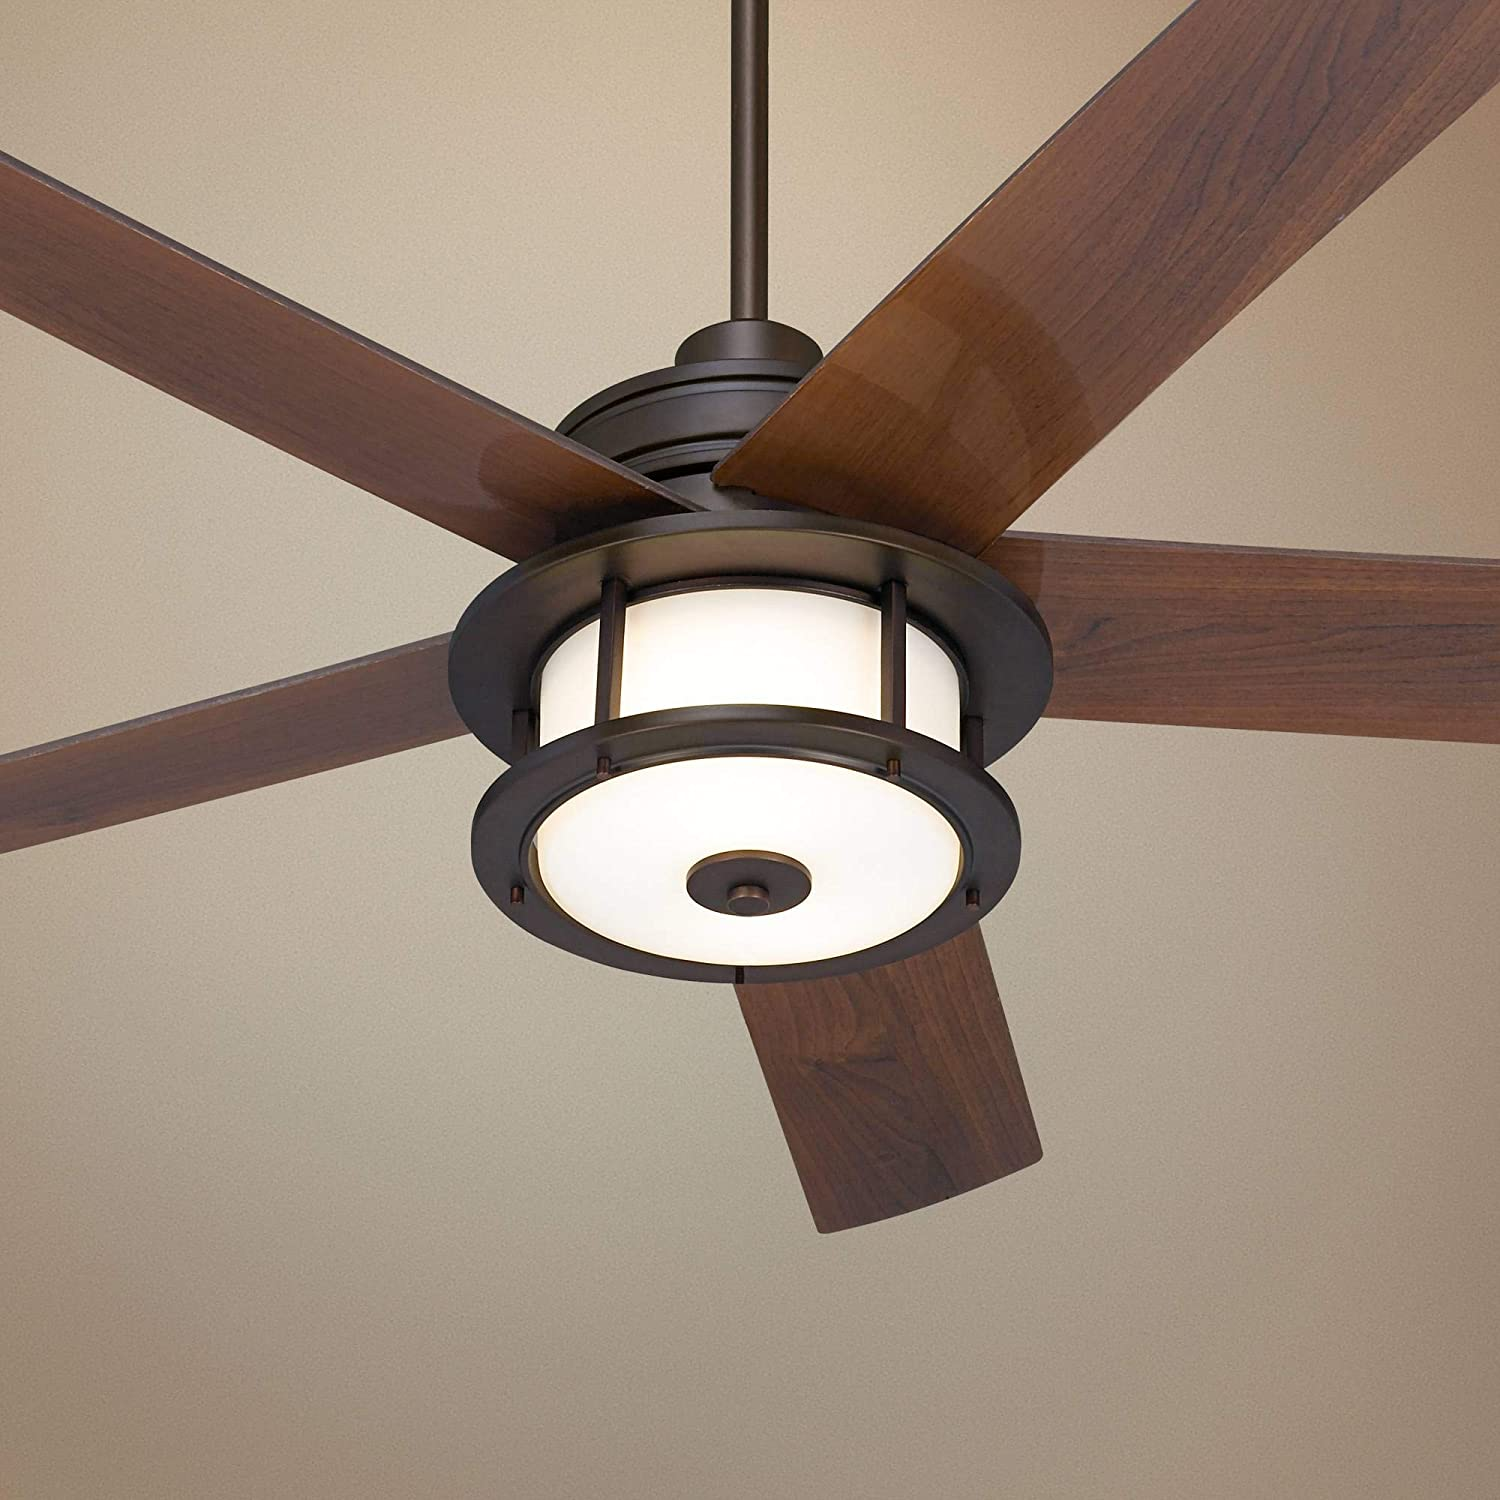 60 Casa Largo Modern Outdoor Ceiling Fan with Light LED Oil Brushed Bronze Dark Walnut Blades Frosted White Glass Damp Rated for Patio Porch – Casa Vieja